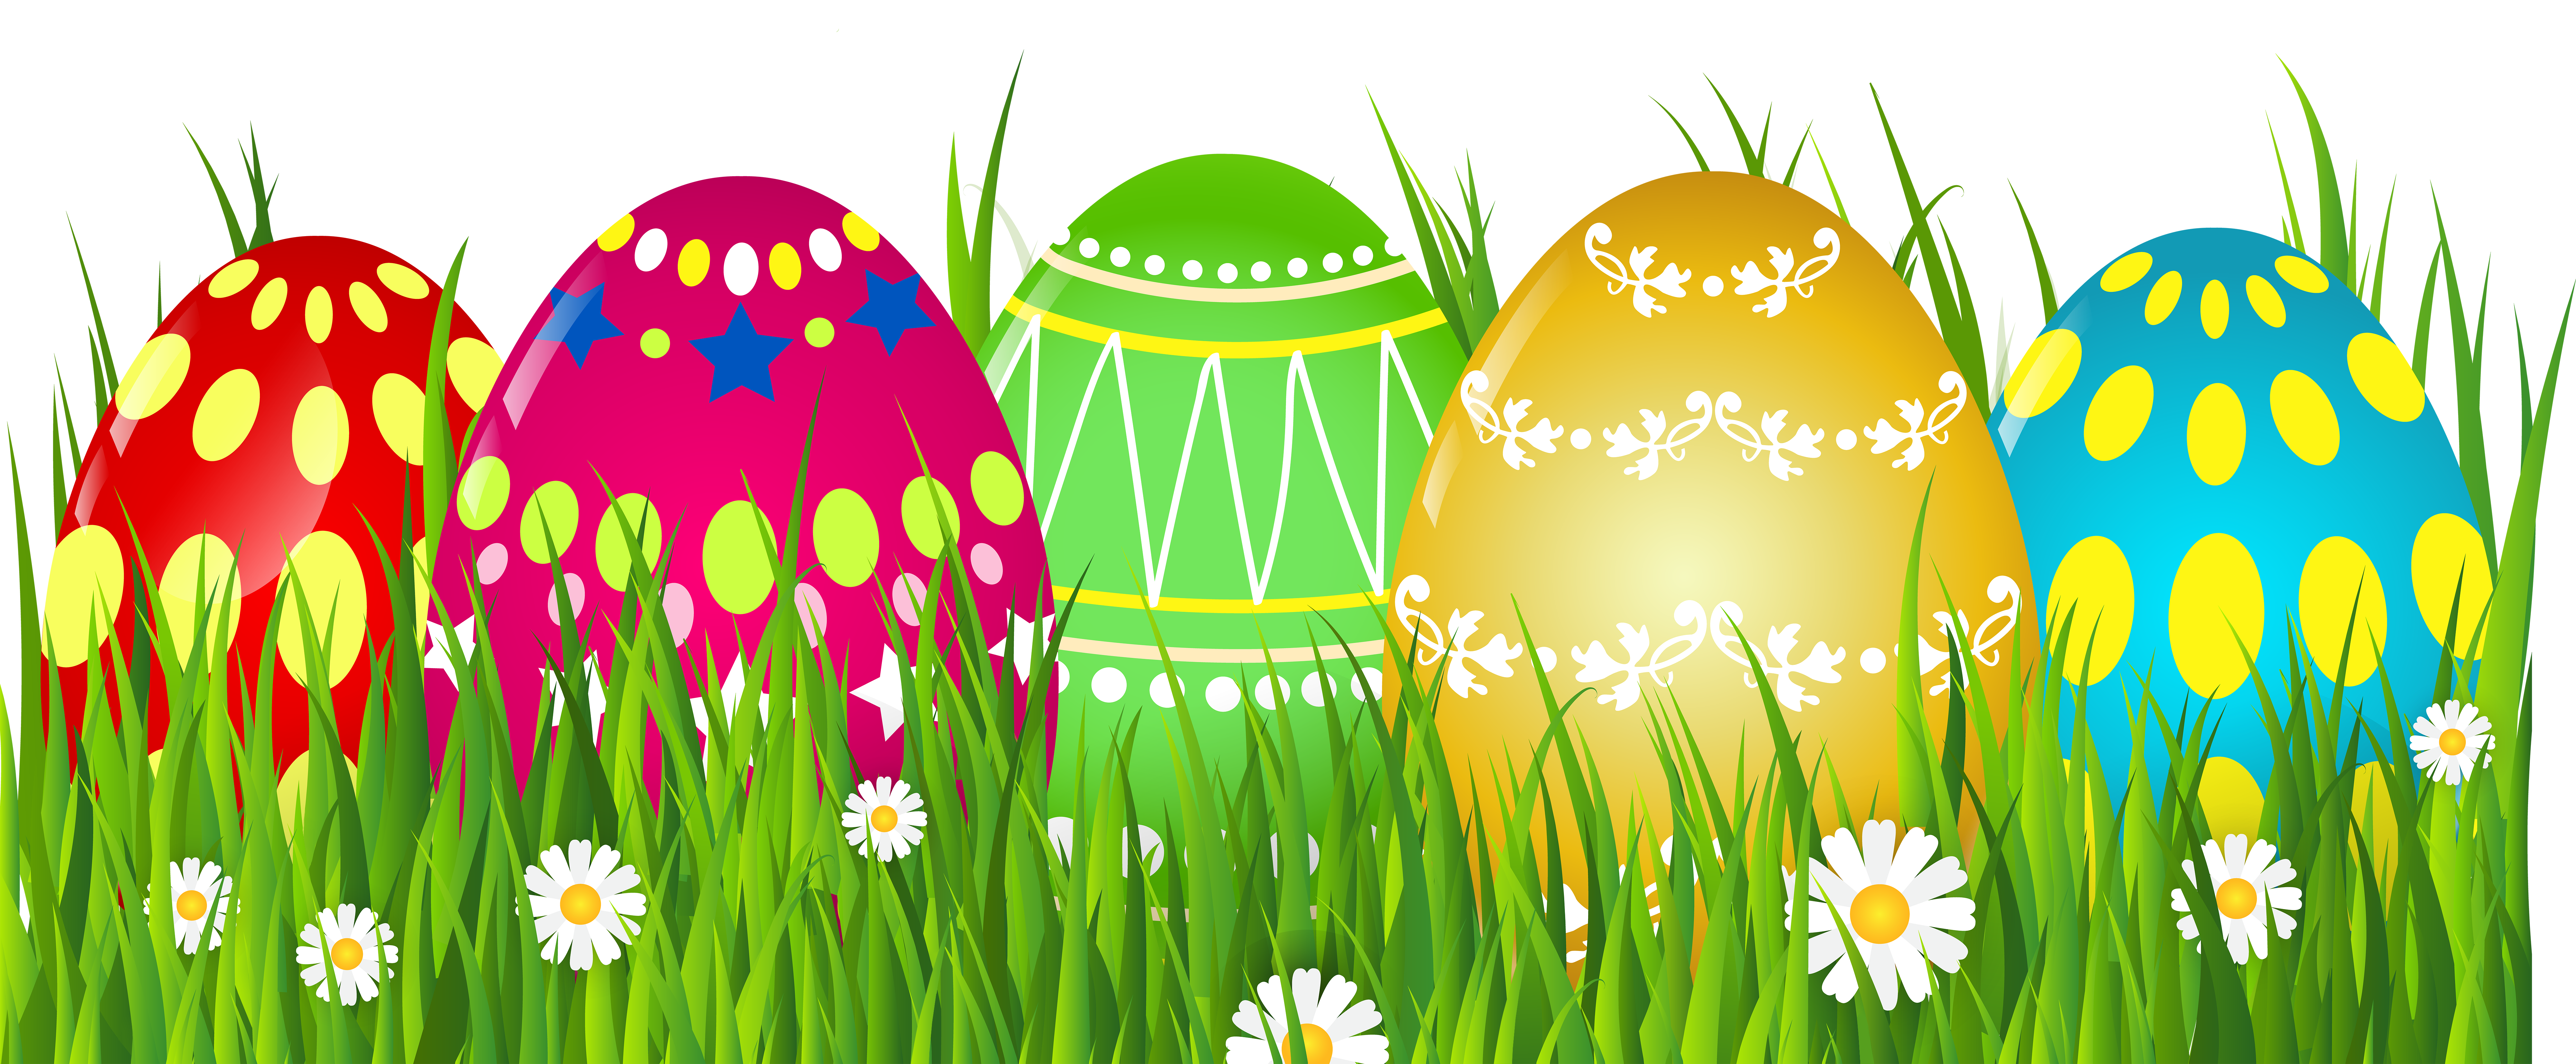 Easter Grass Clipart Image.